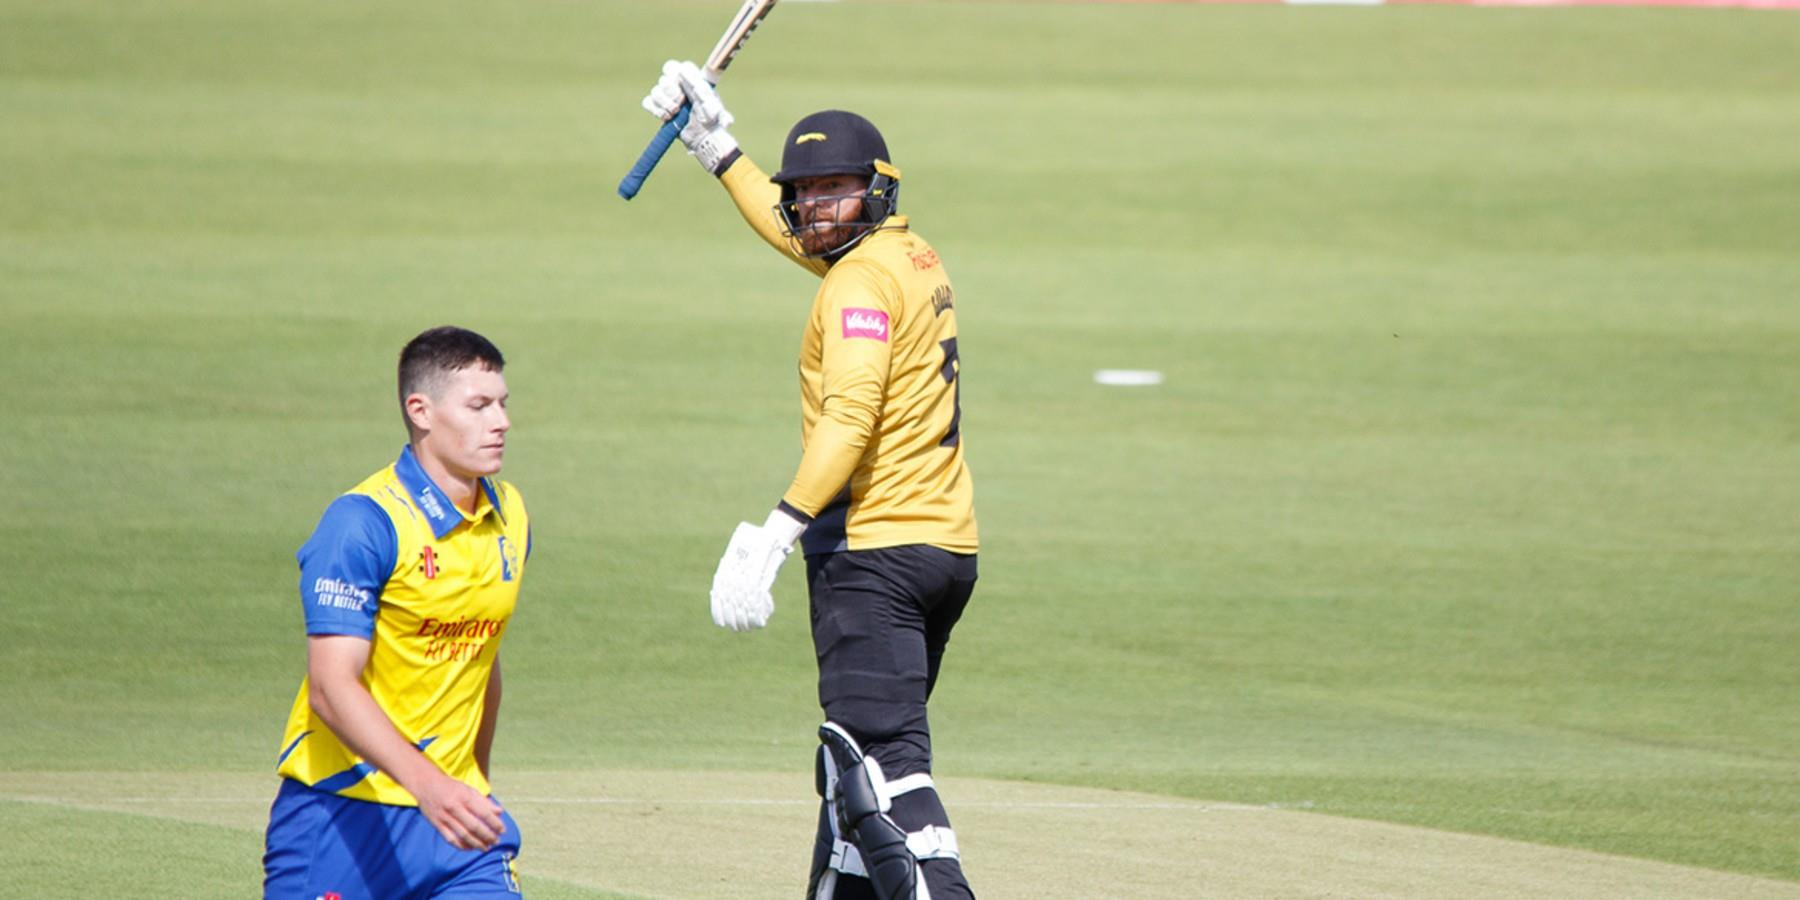 Leicestershire Foxes v Durham